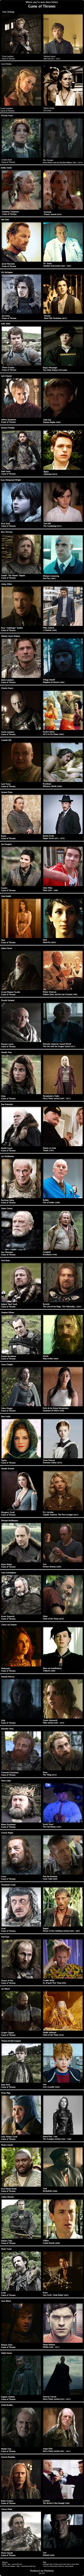 Game of Thrones cast Mind=Blown.